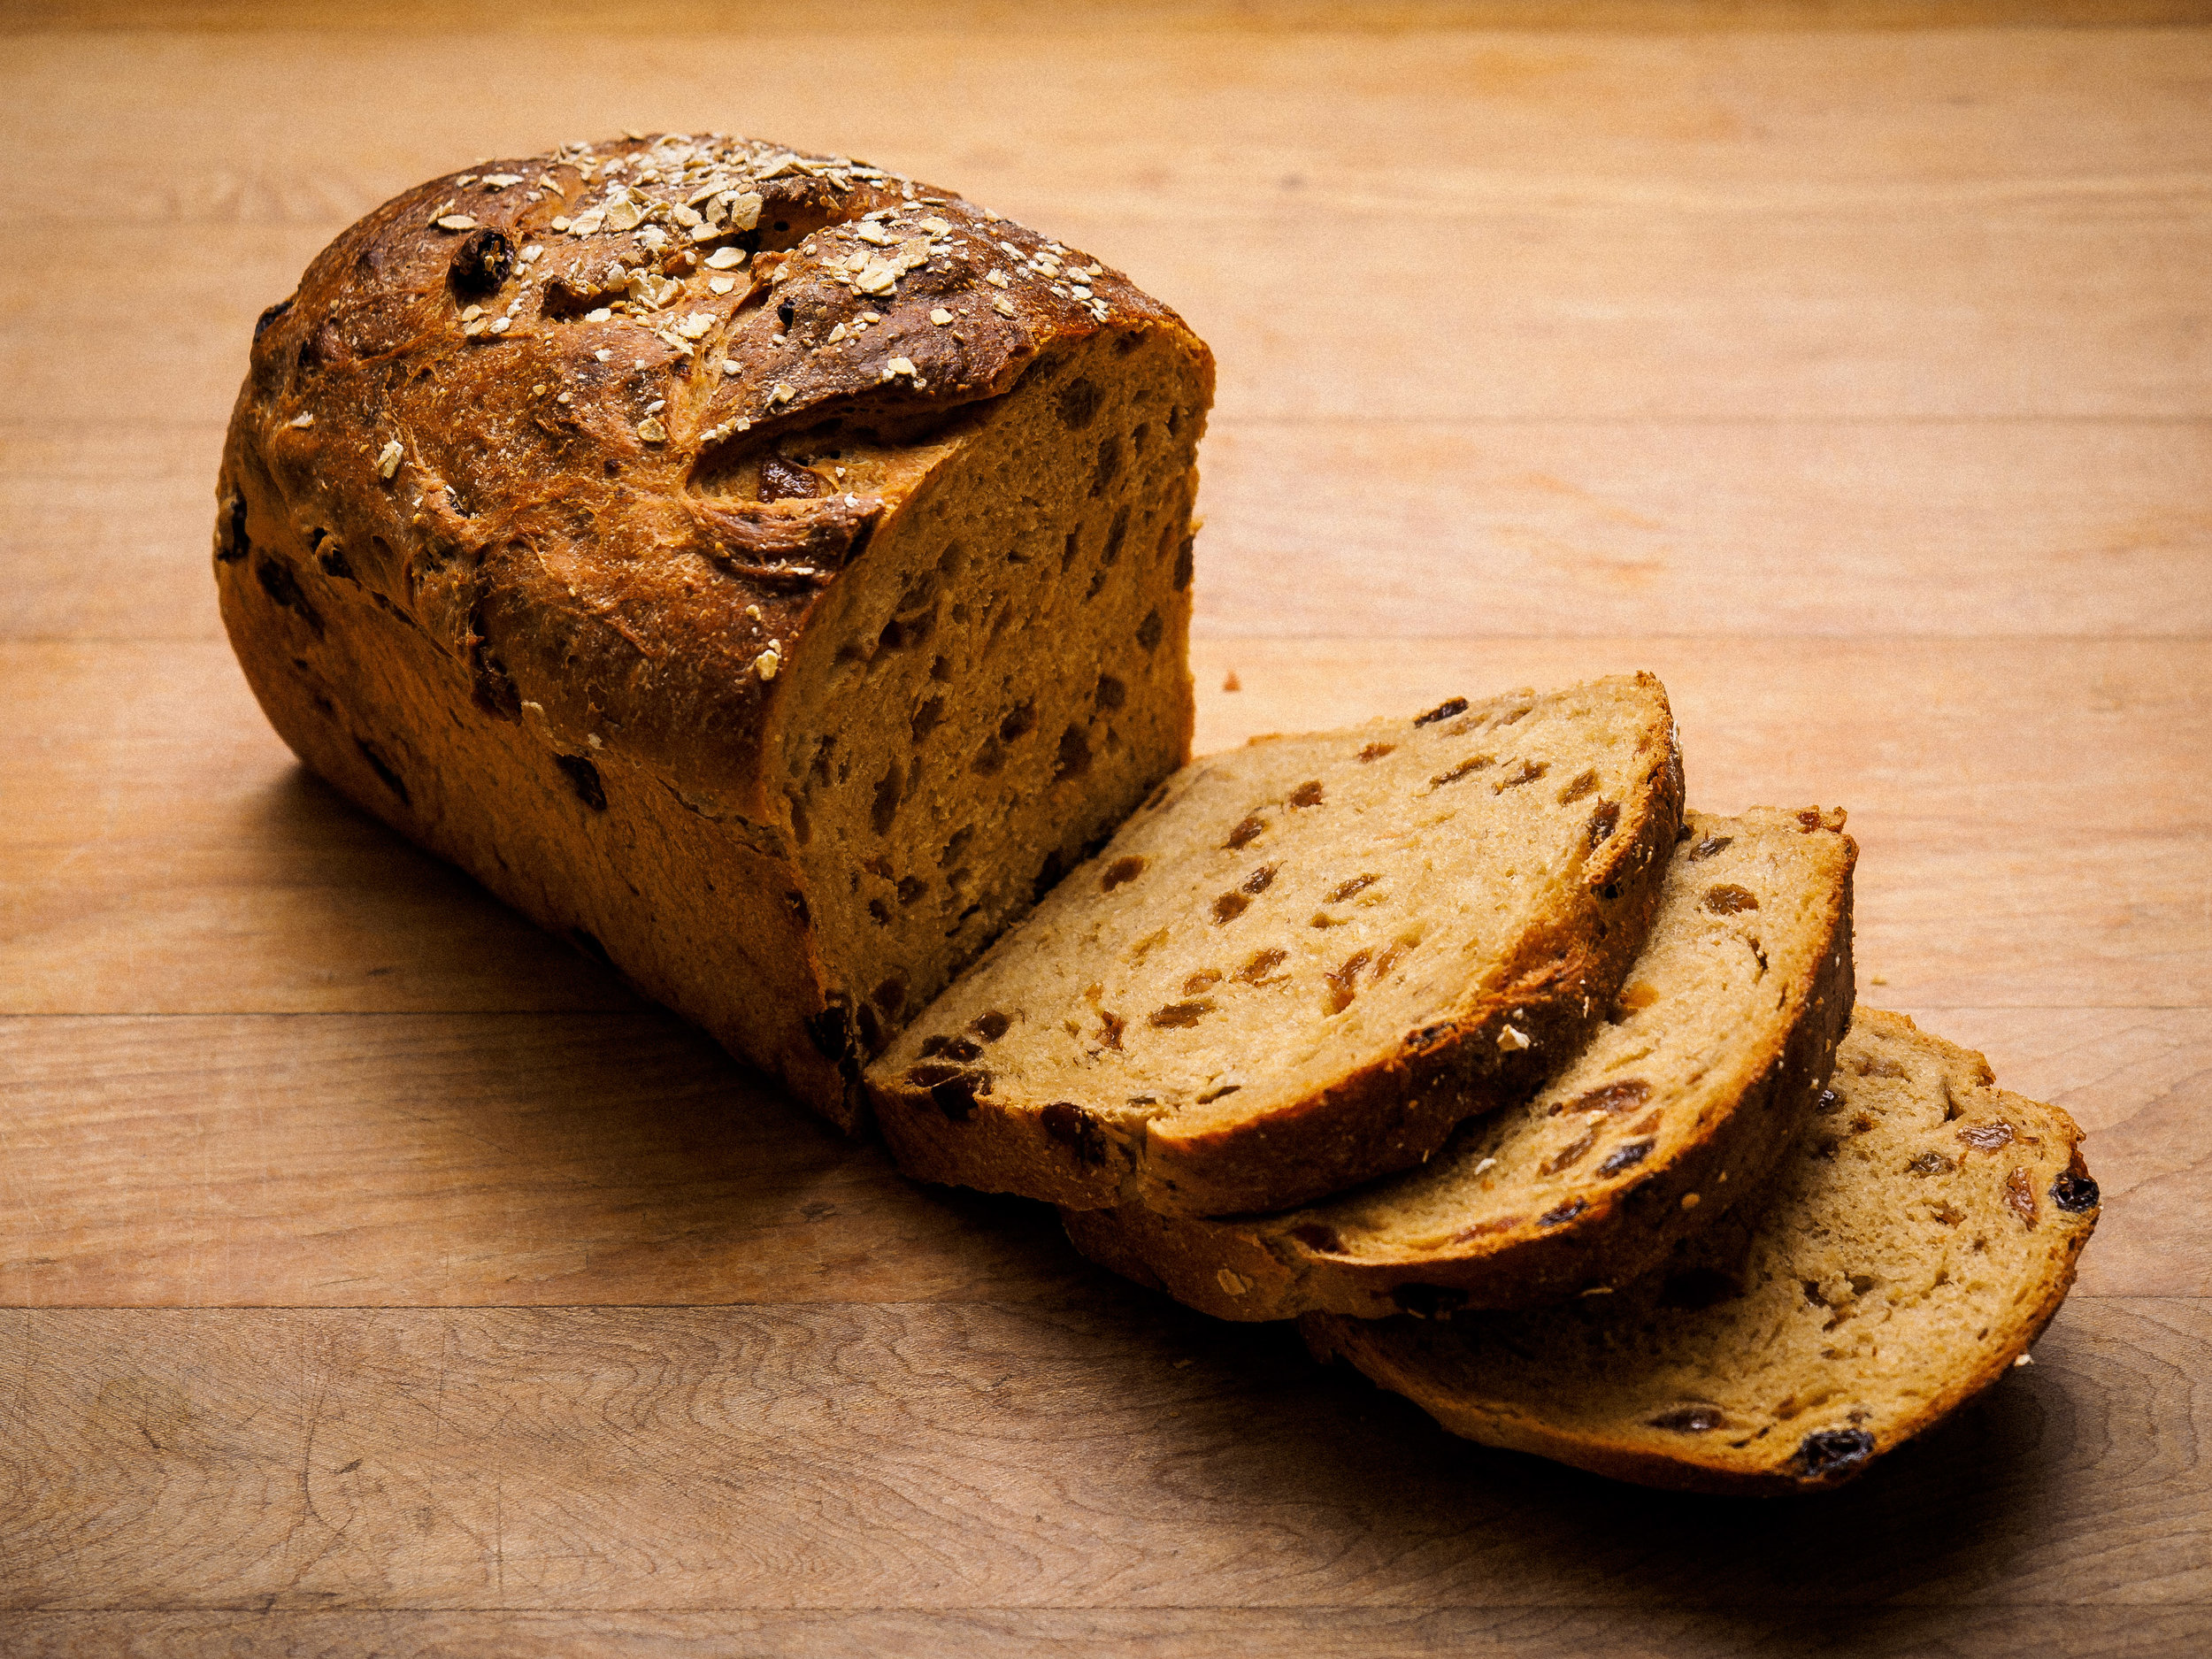 OUR MISSION - At Bread & Butter Bakery we proudly serve the finest of comfort foods. All of our baked goods are made fresh daily and we pride ourselves on using only the freshest ingredients.